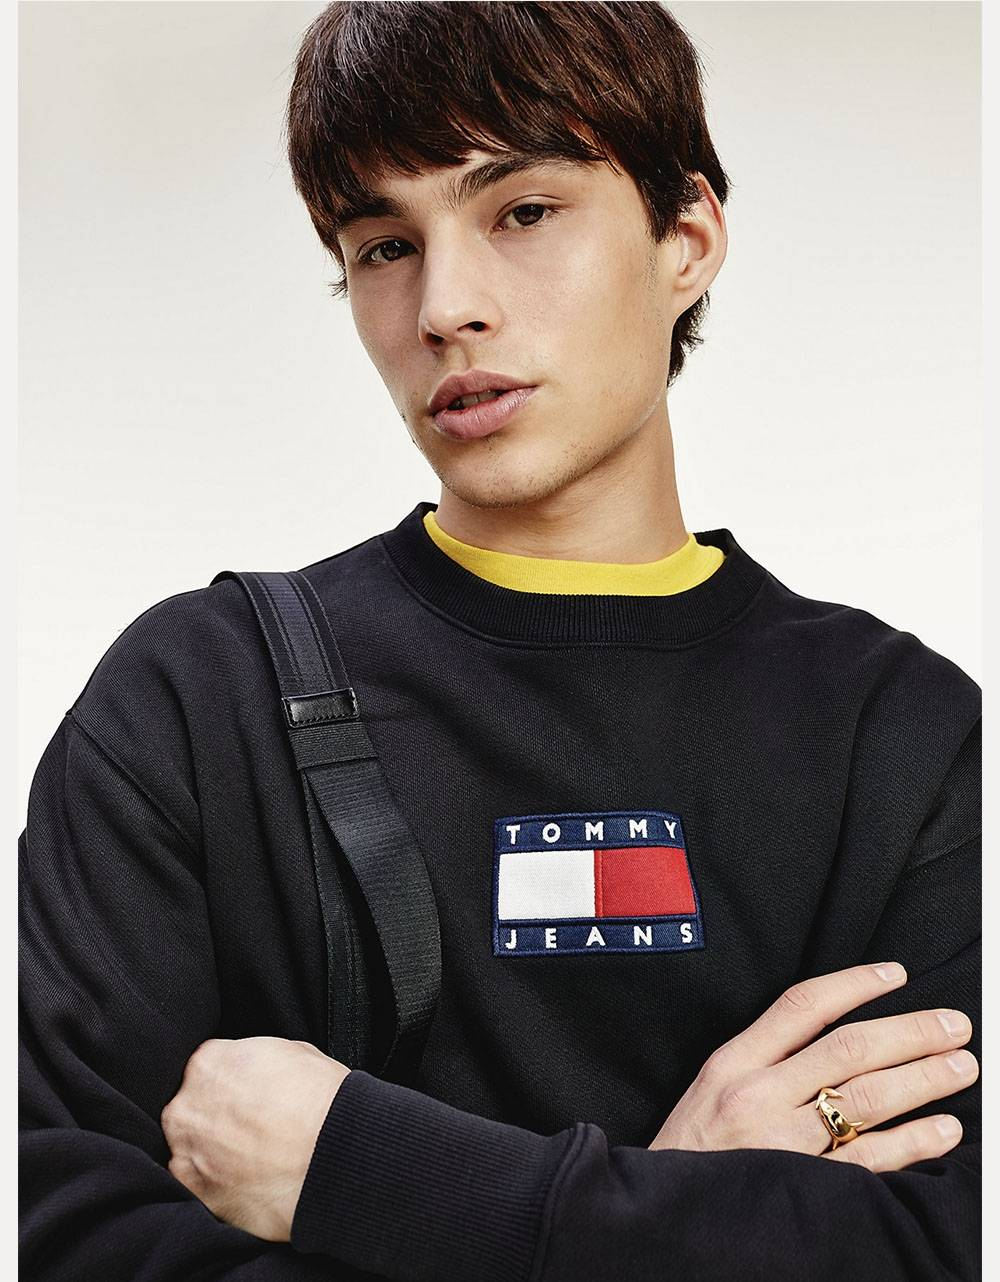 Tommy Jeans small flag crewneck sweater - black Tommy Jeans Sweater 135,00€